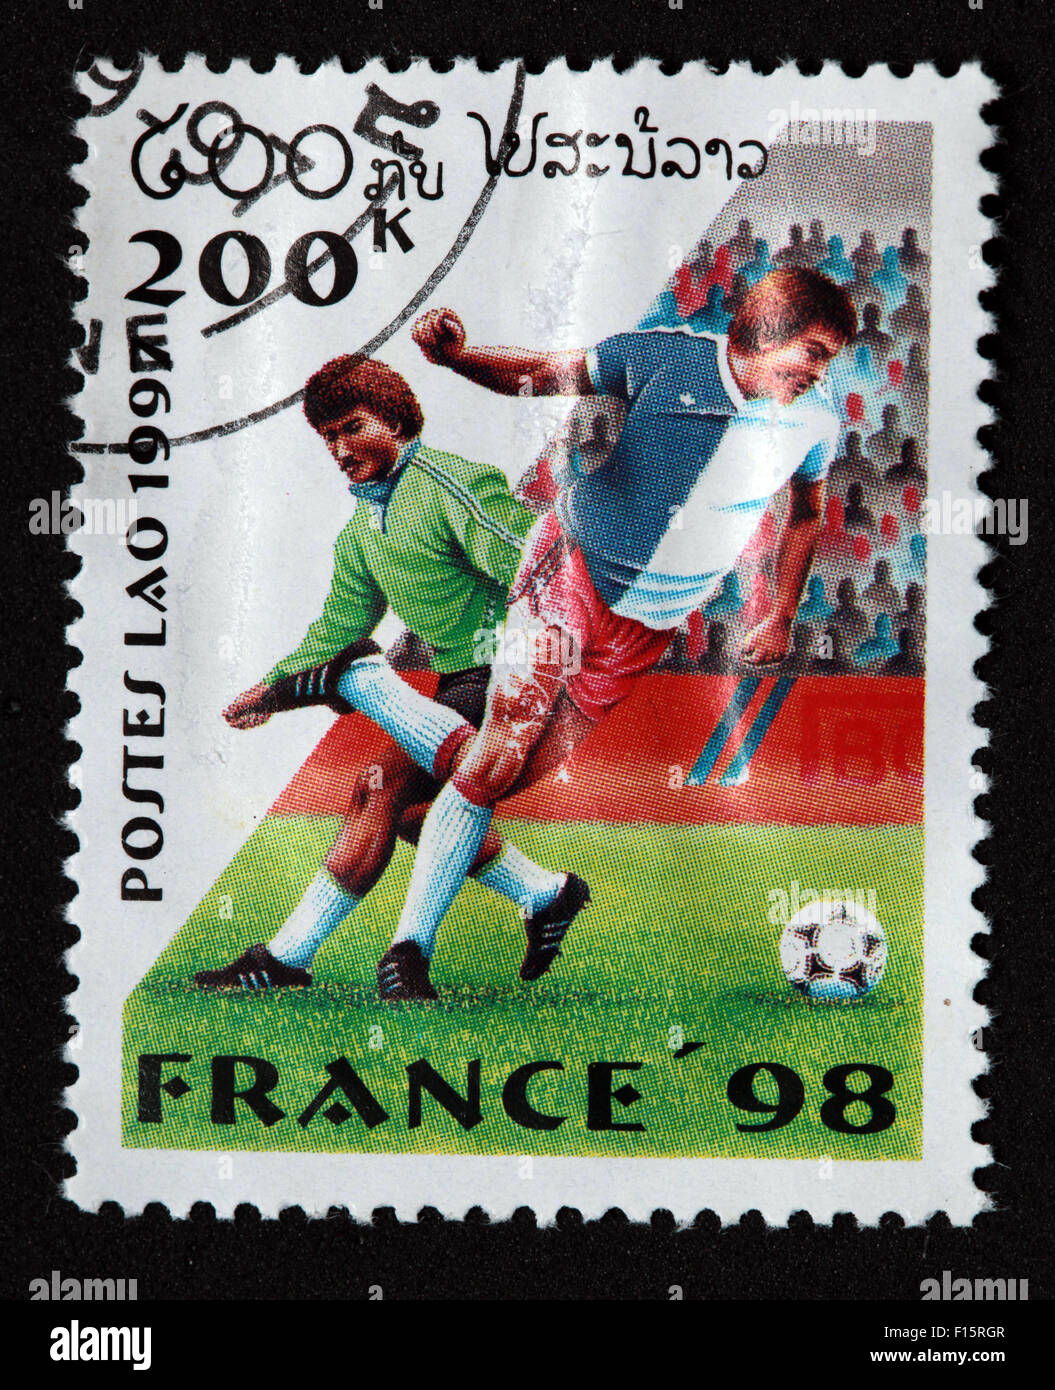 Postes Lao Laos 200K France 1998 98 football deportes world Cup worldcup sport Stamp - Stock Image